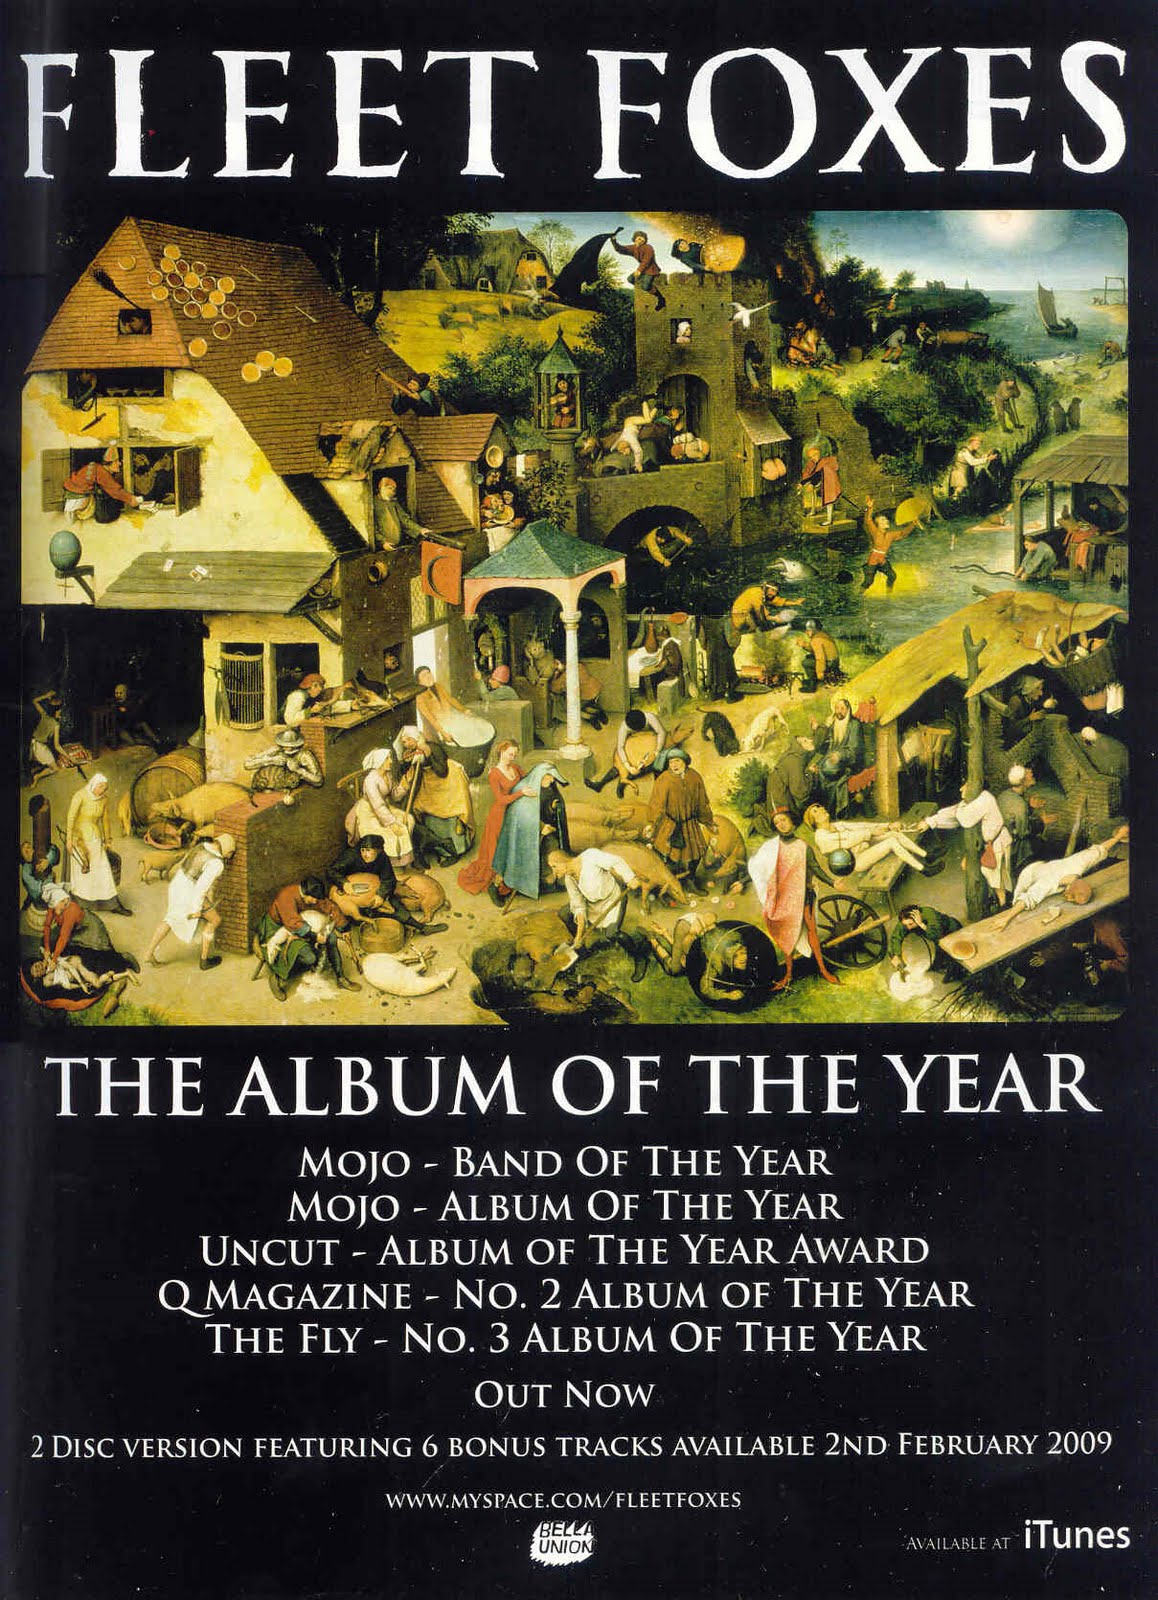 a advanced portfolio media studies ancillary texts examples of this magazine advert by fleet foxes does feature the front cover of he album but only the image the fact that the advert also highlights the number of